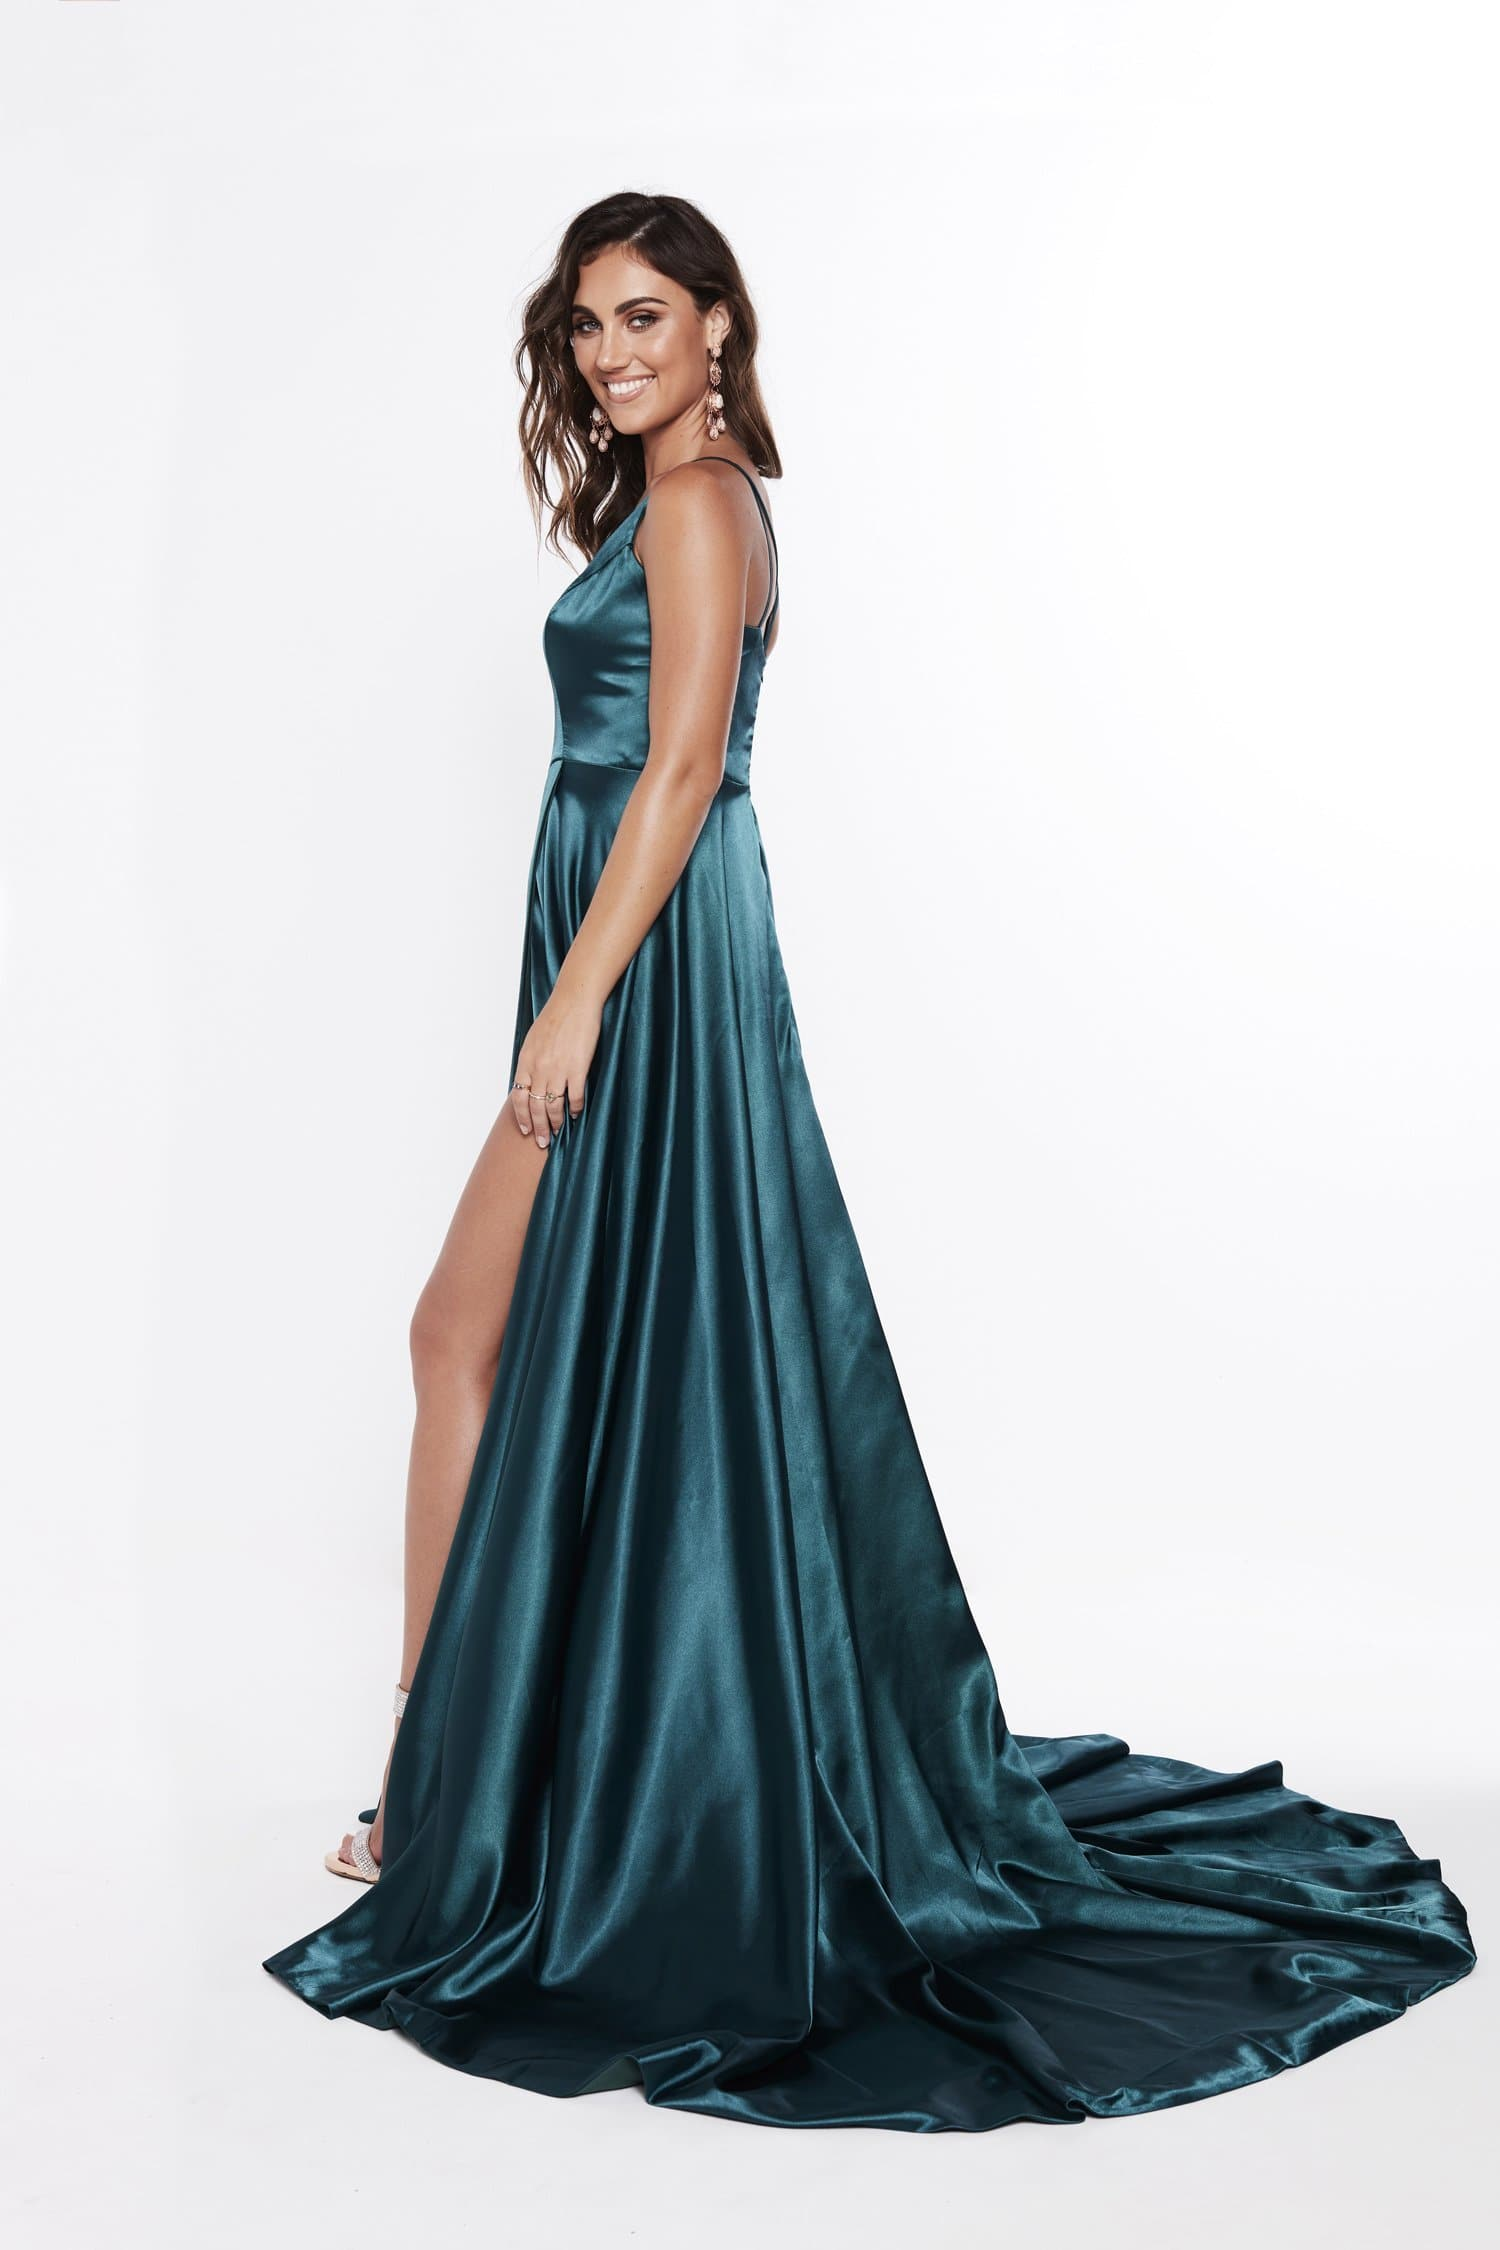 A&N Lucia - Teal Satin Gown with A Line Skirt and Detailed Back